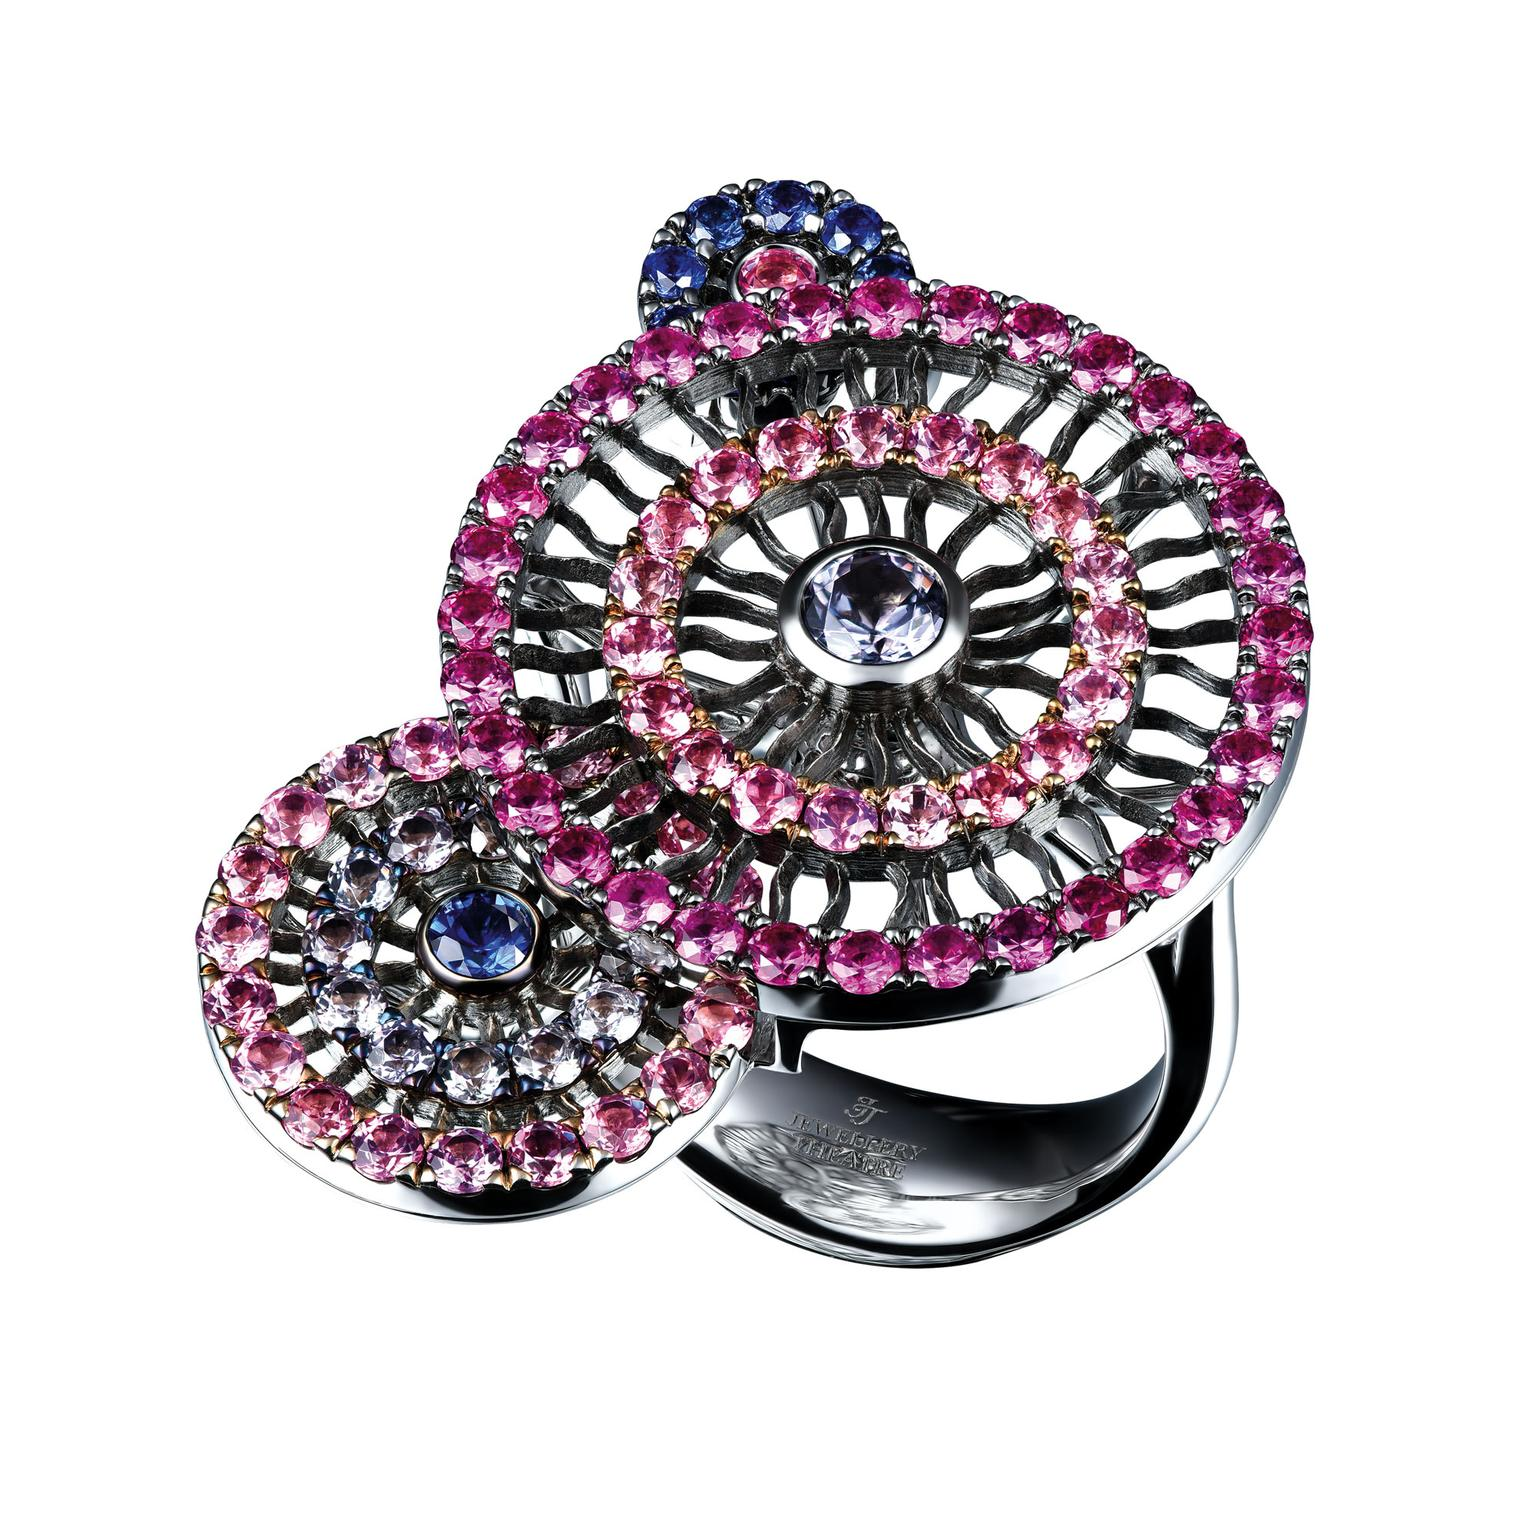 Jewellery Theatre spinel and sapphire ring